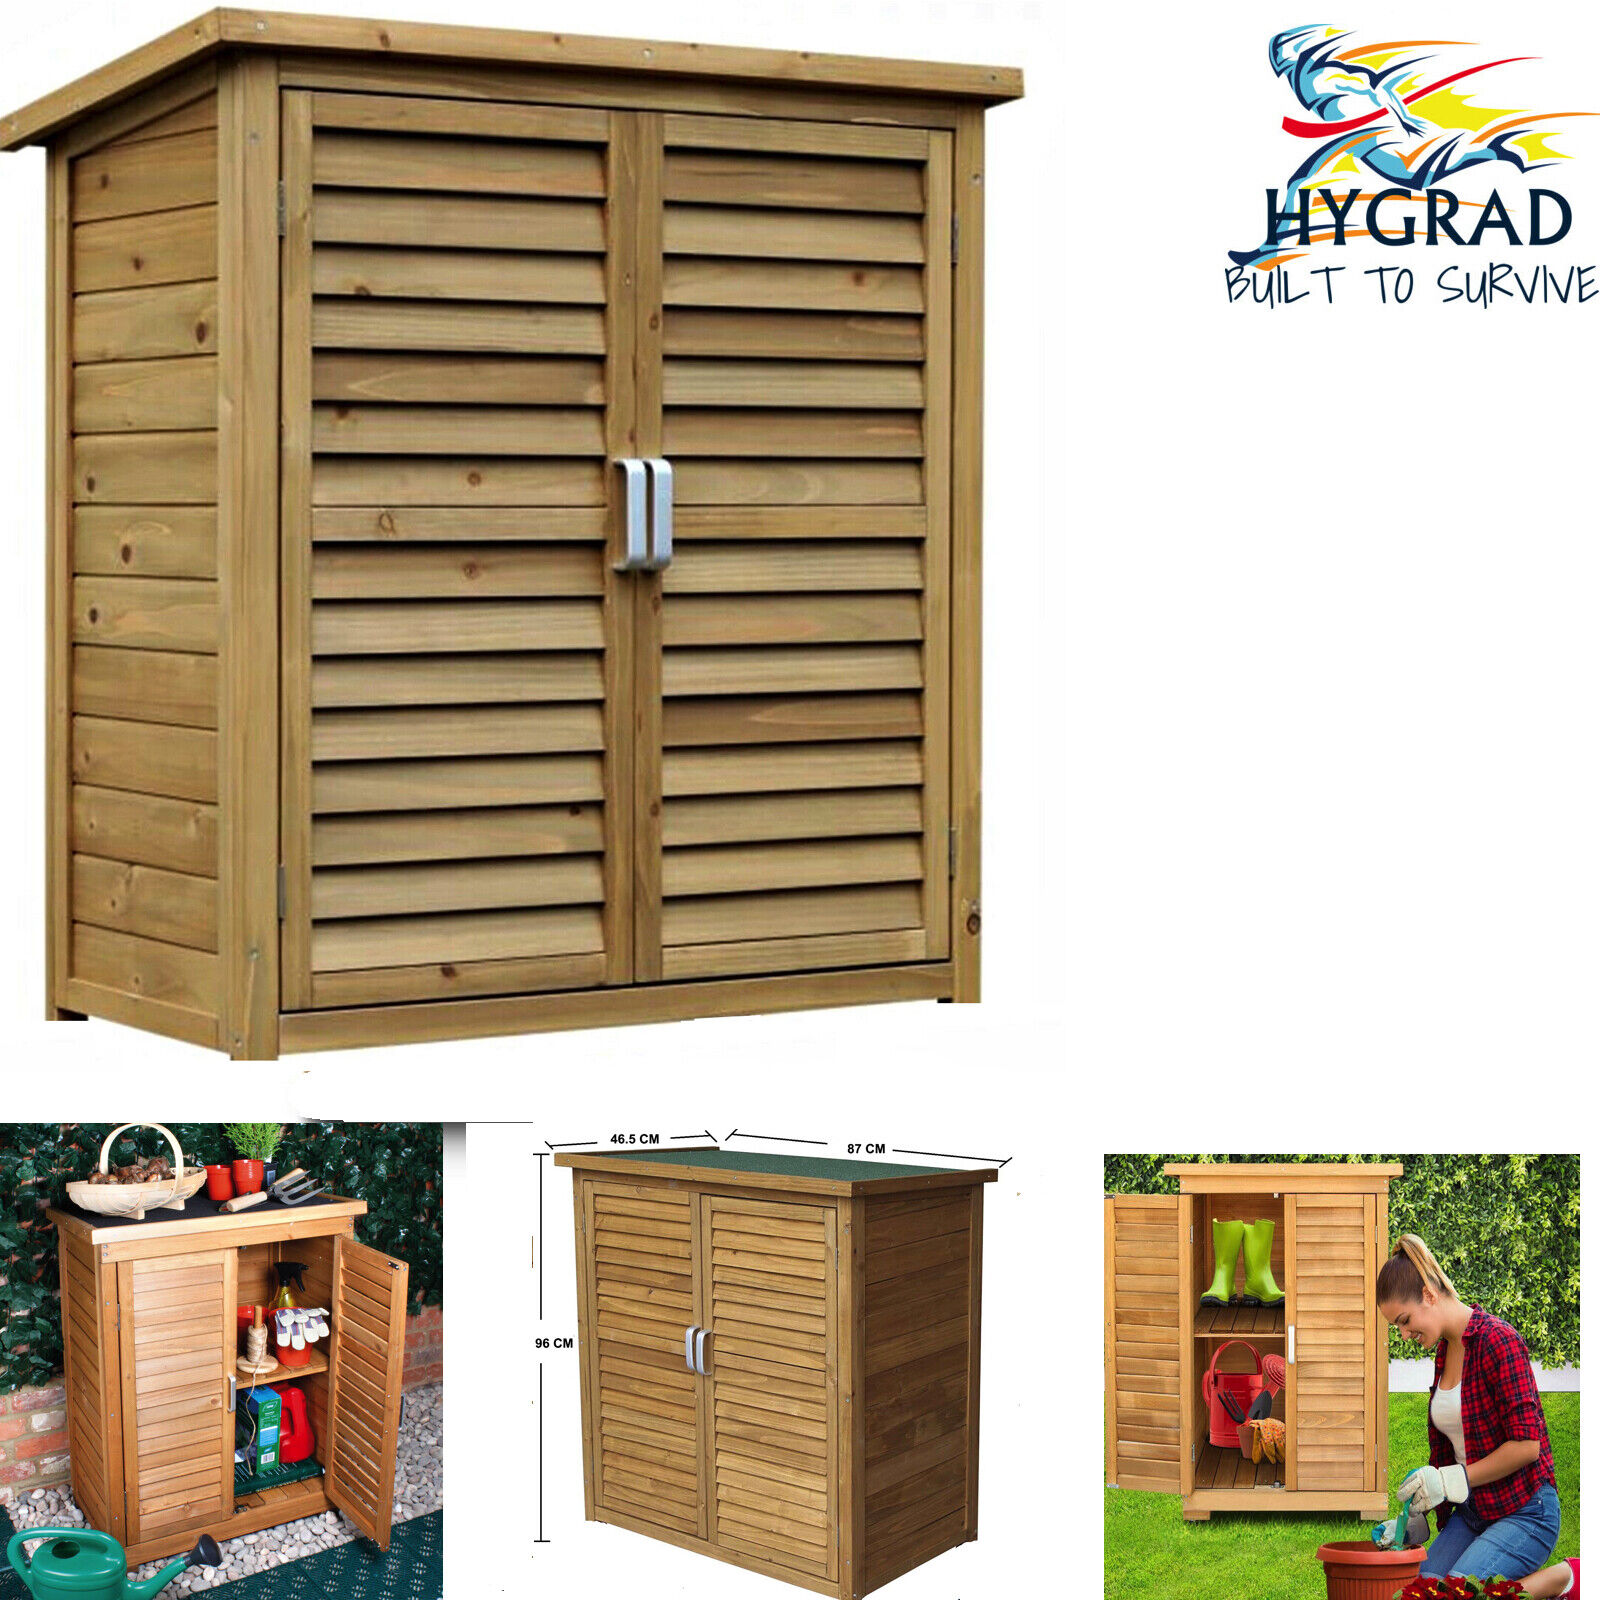 G4RCE/® G4RCE Wooden Outdoor Garden Cabinet Utility Storage Tools Shelf Store Box Shed